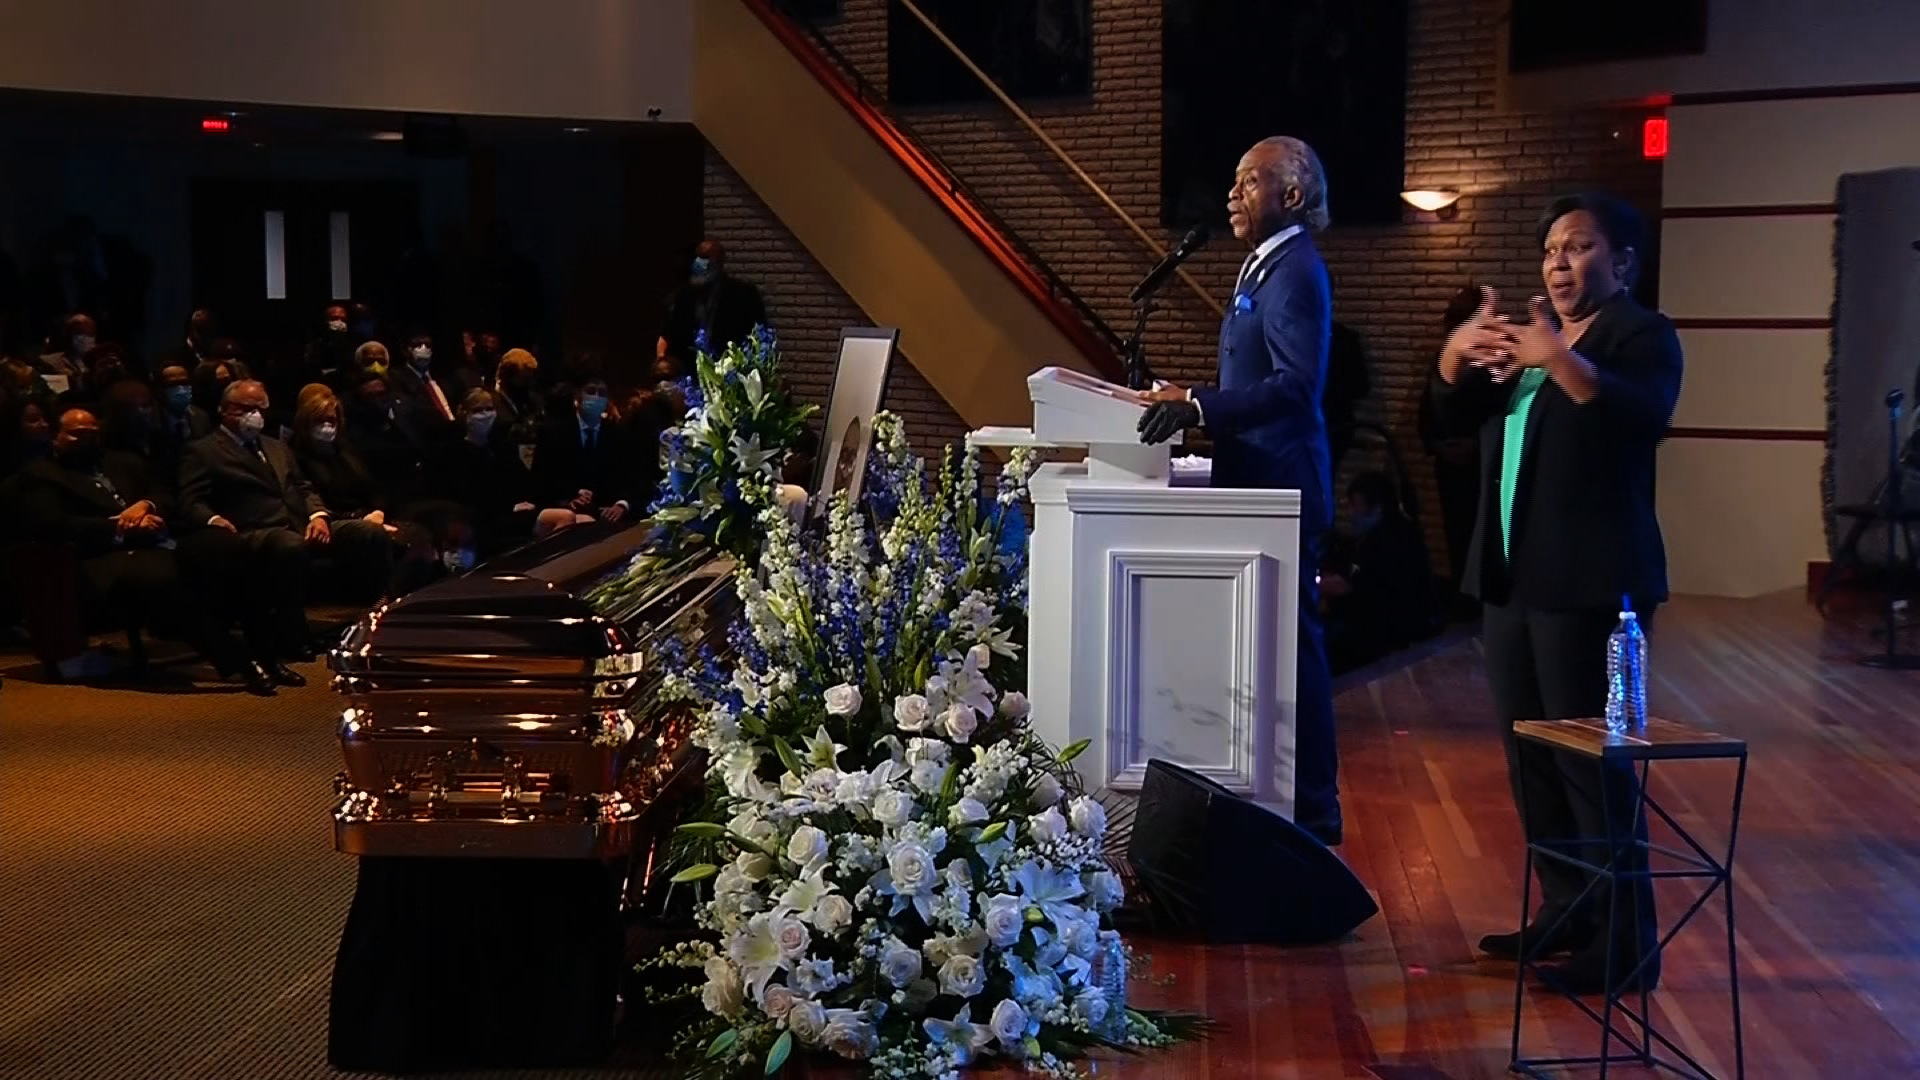 Rev. Al Sharpton speaks at George Floyd's memorial service in Minneapolis, on June 4.